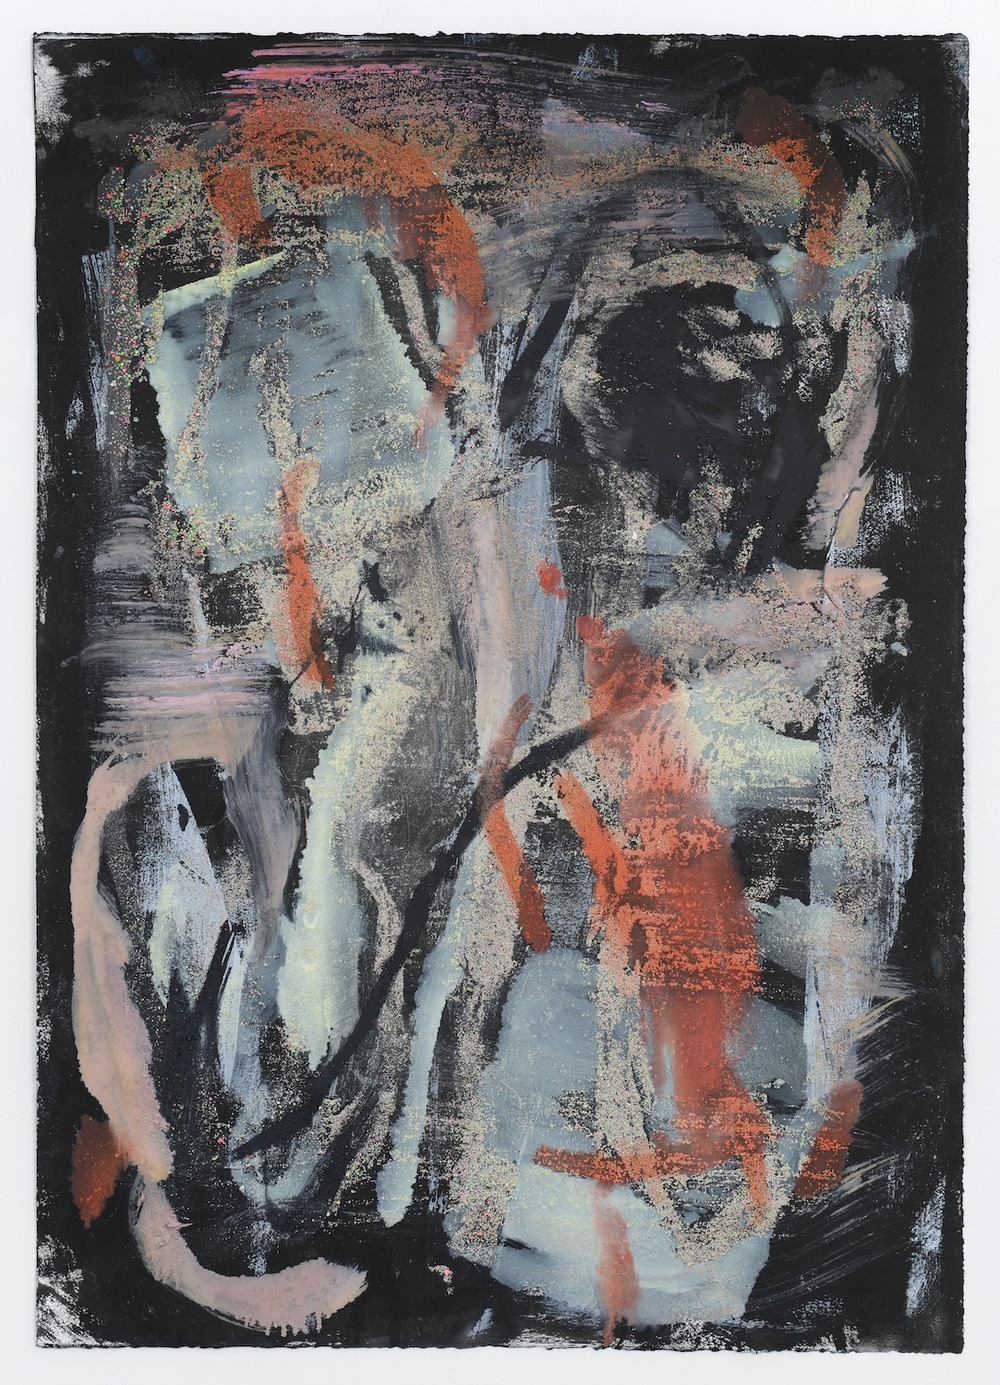 Jon Pestoni  Untitled  2013 Oil and mixed media on paper 40h x 30w in JP151